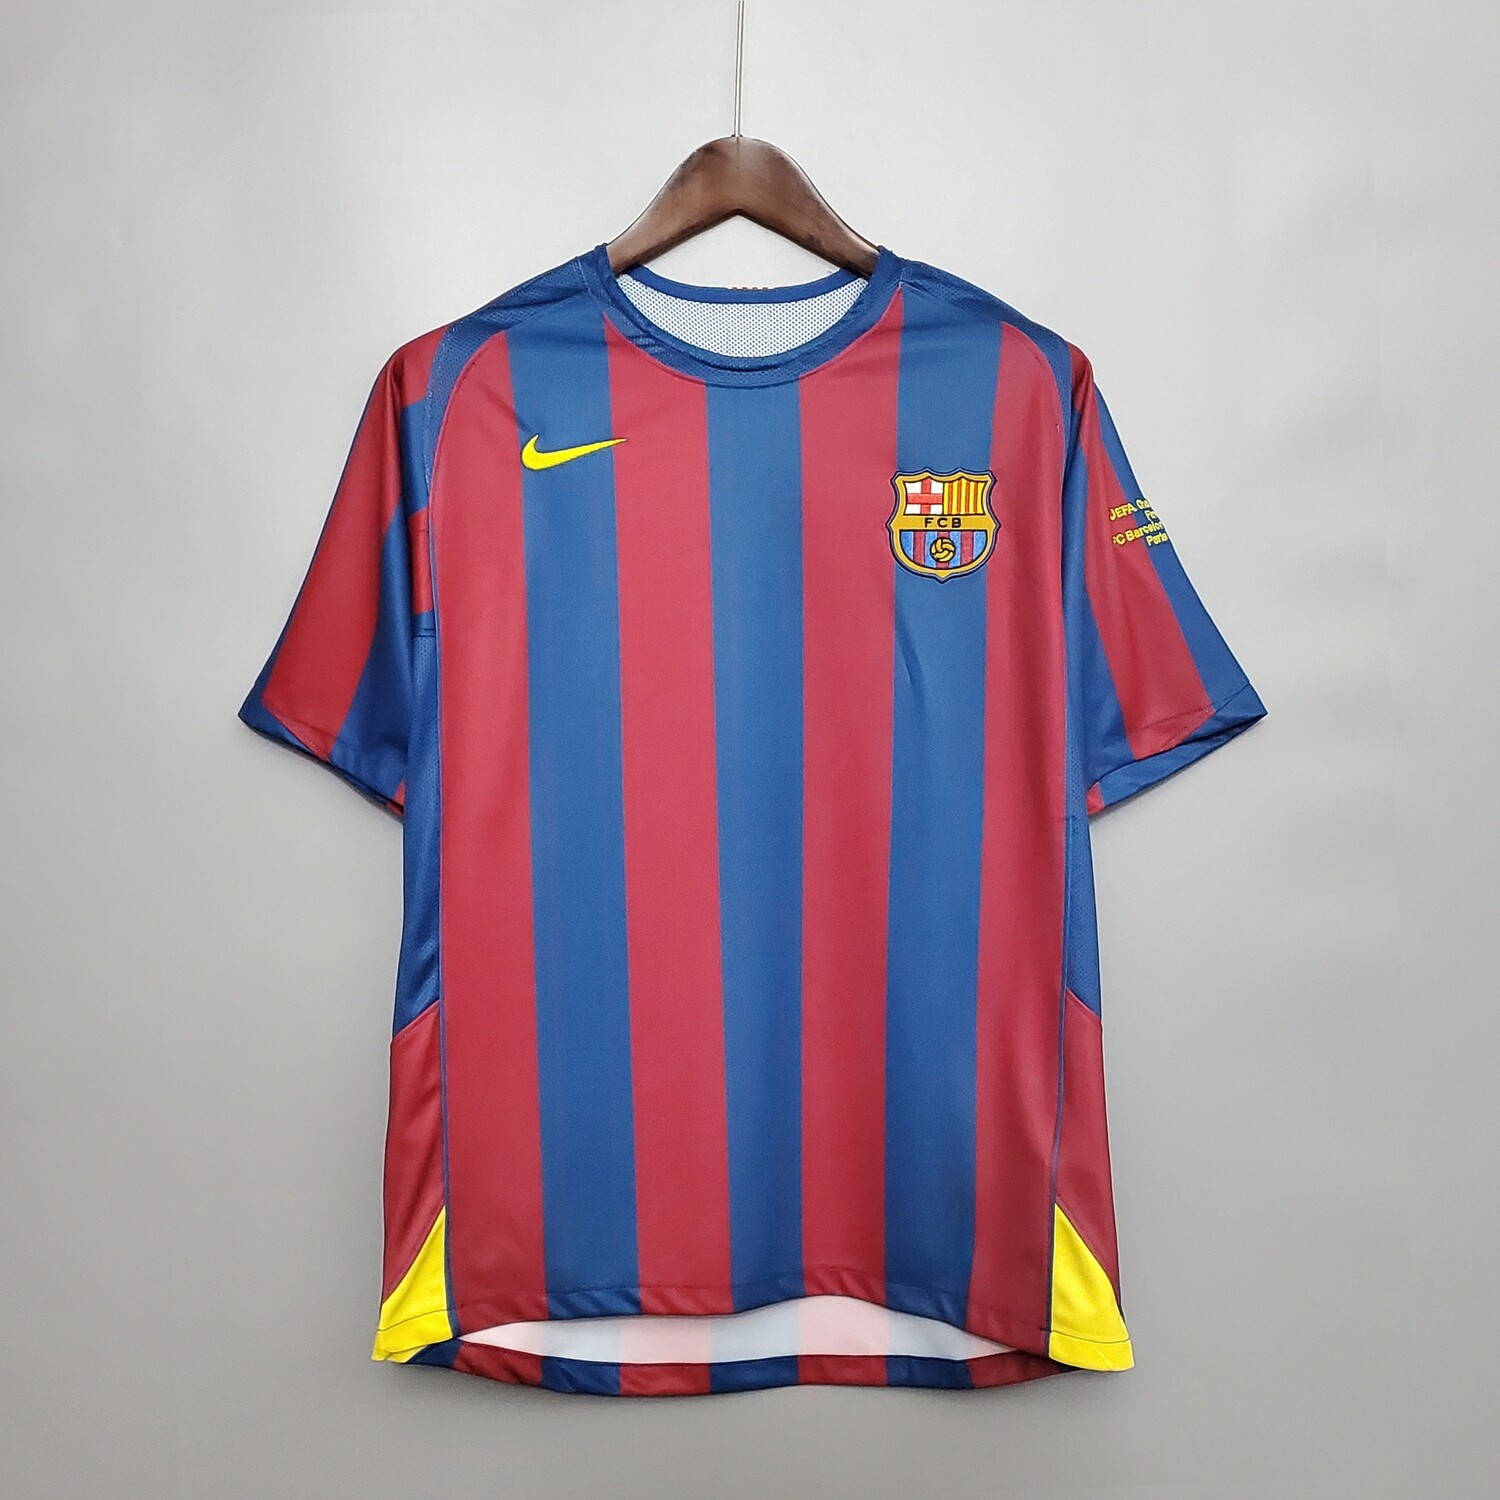 Barcelona 2005-06 Retro Home UCL Final Jersey [Pre-paid Only]